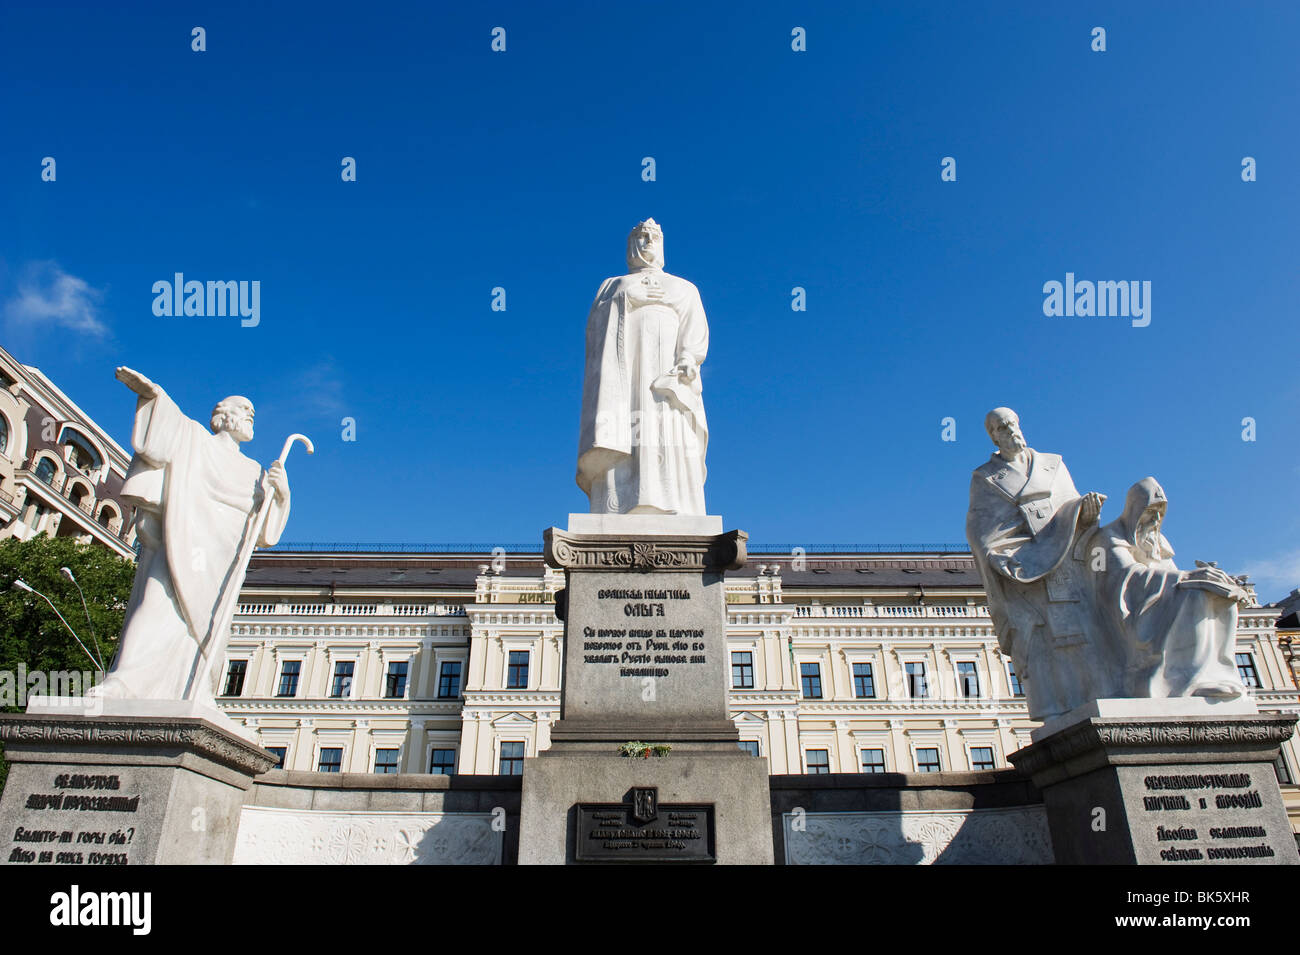 1995 Monument to the Victims of the Great Famine, Kiev, Ukraine, Europe - Stock Image